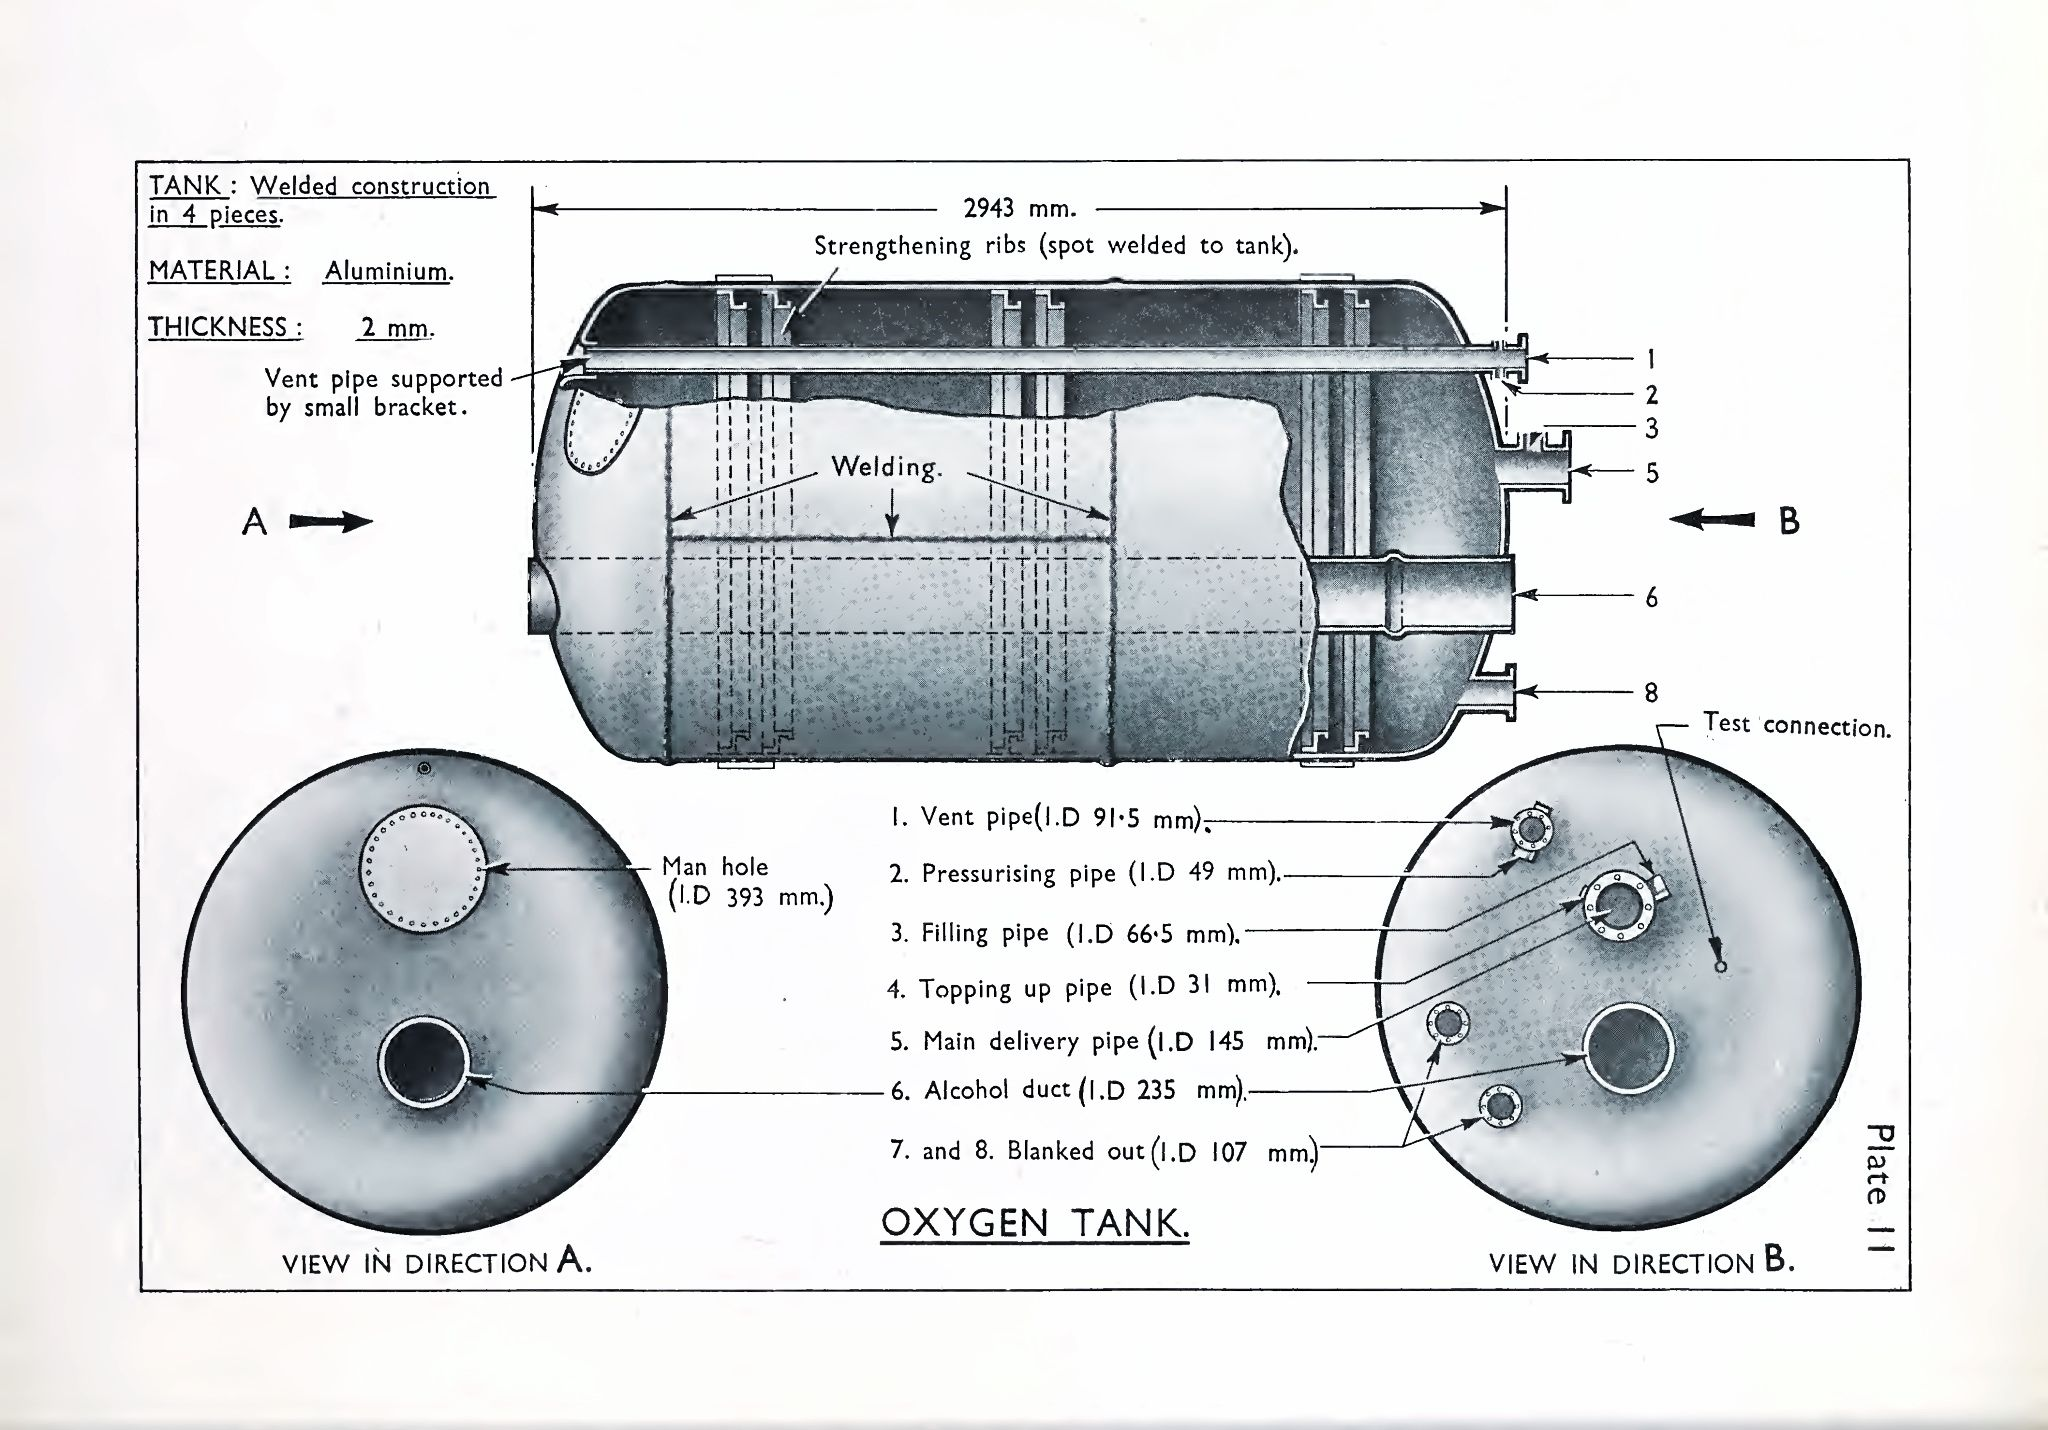 hight resolution of o2 tank of the a4 v2 rocket